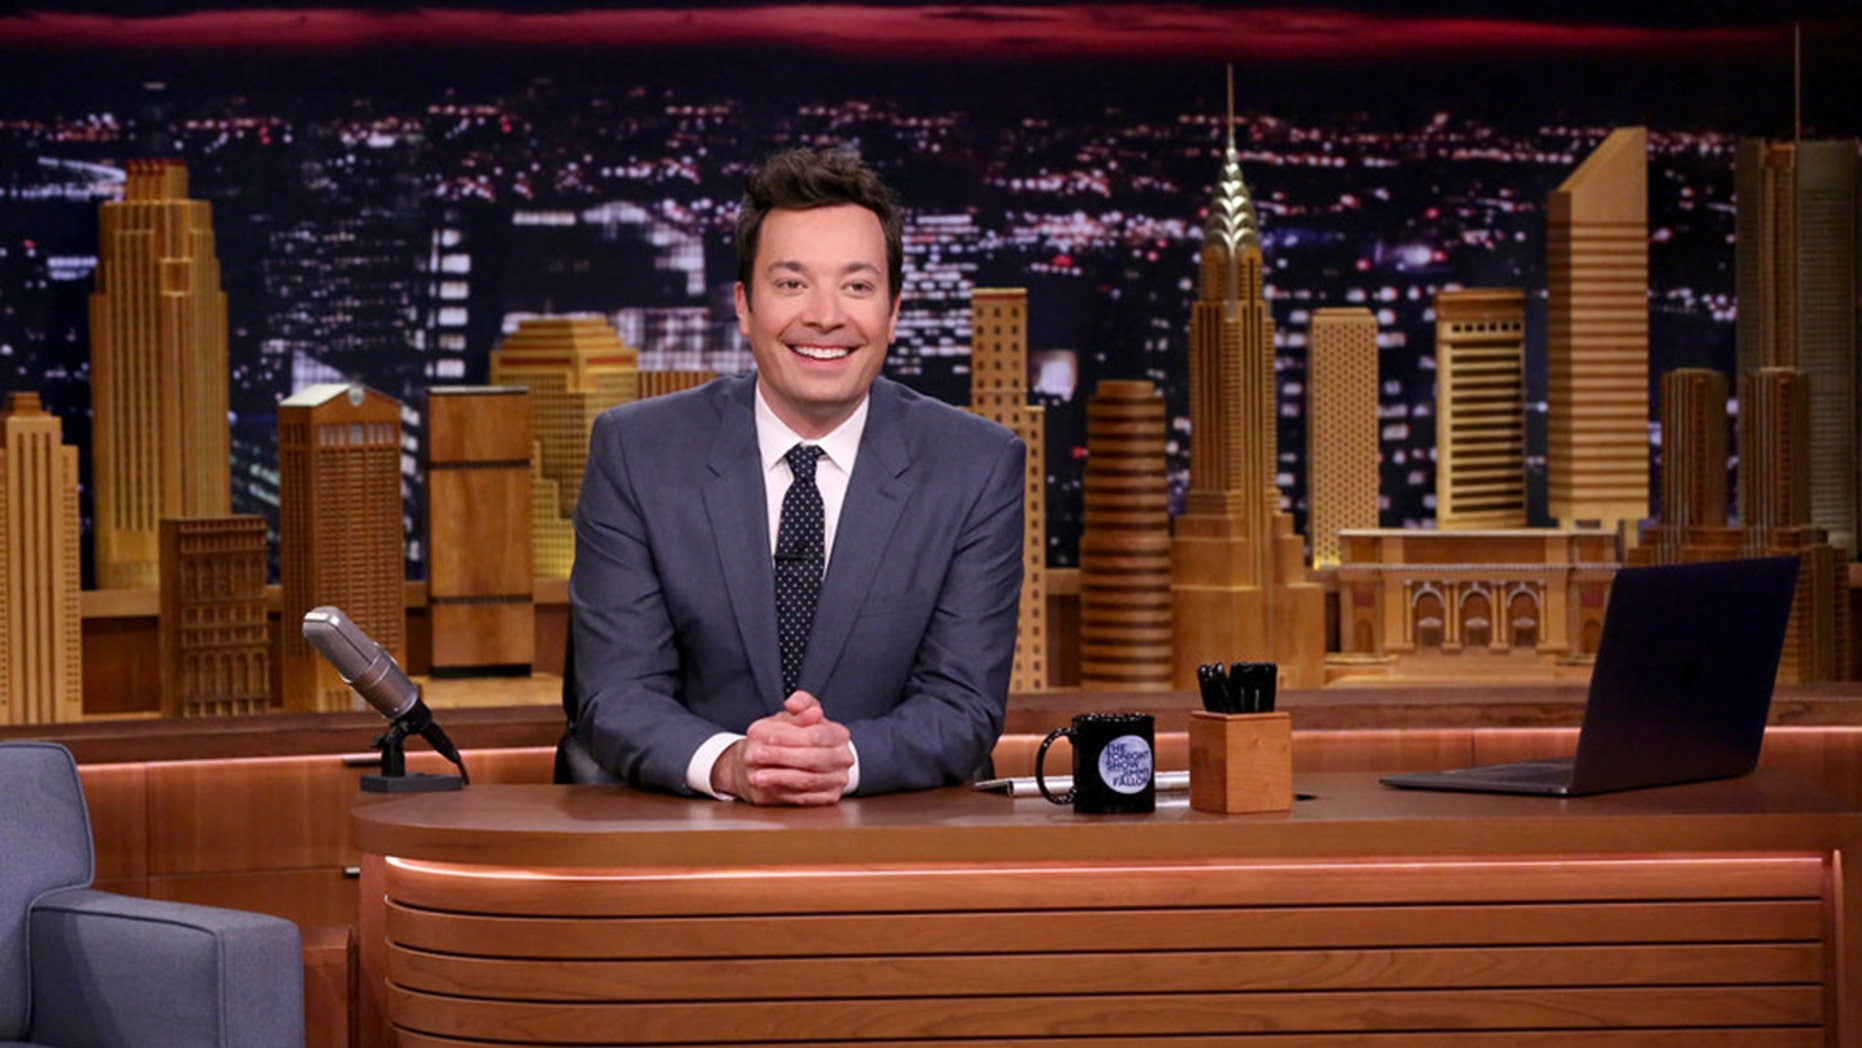 Jimmy Fallon on the set of 'The Tonight Show' in March 2017.